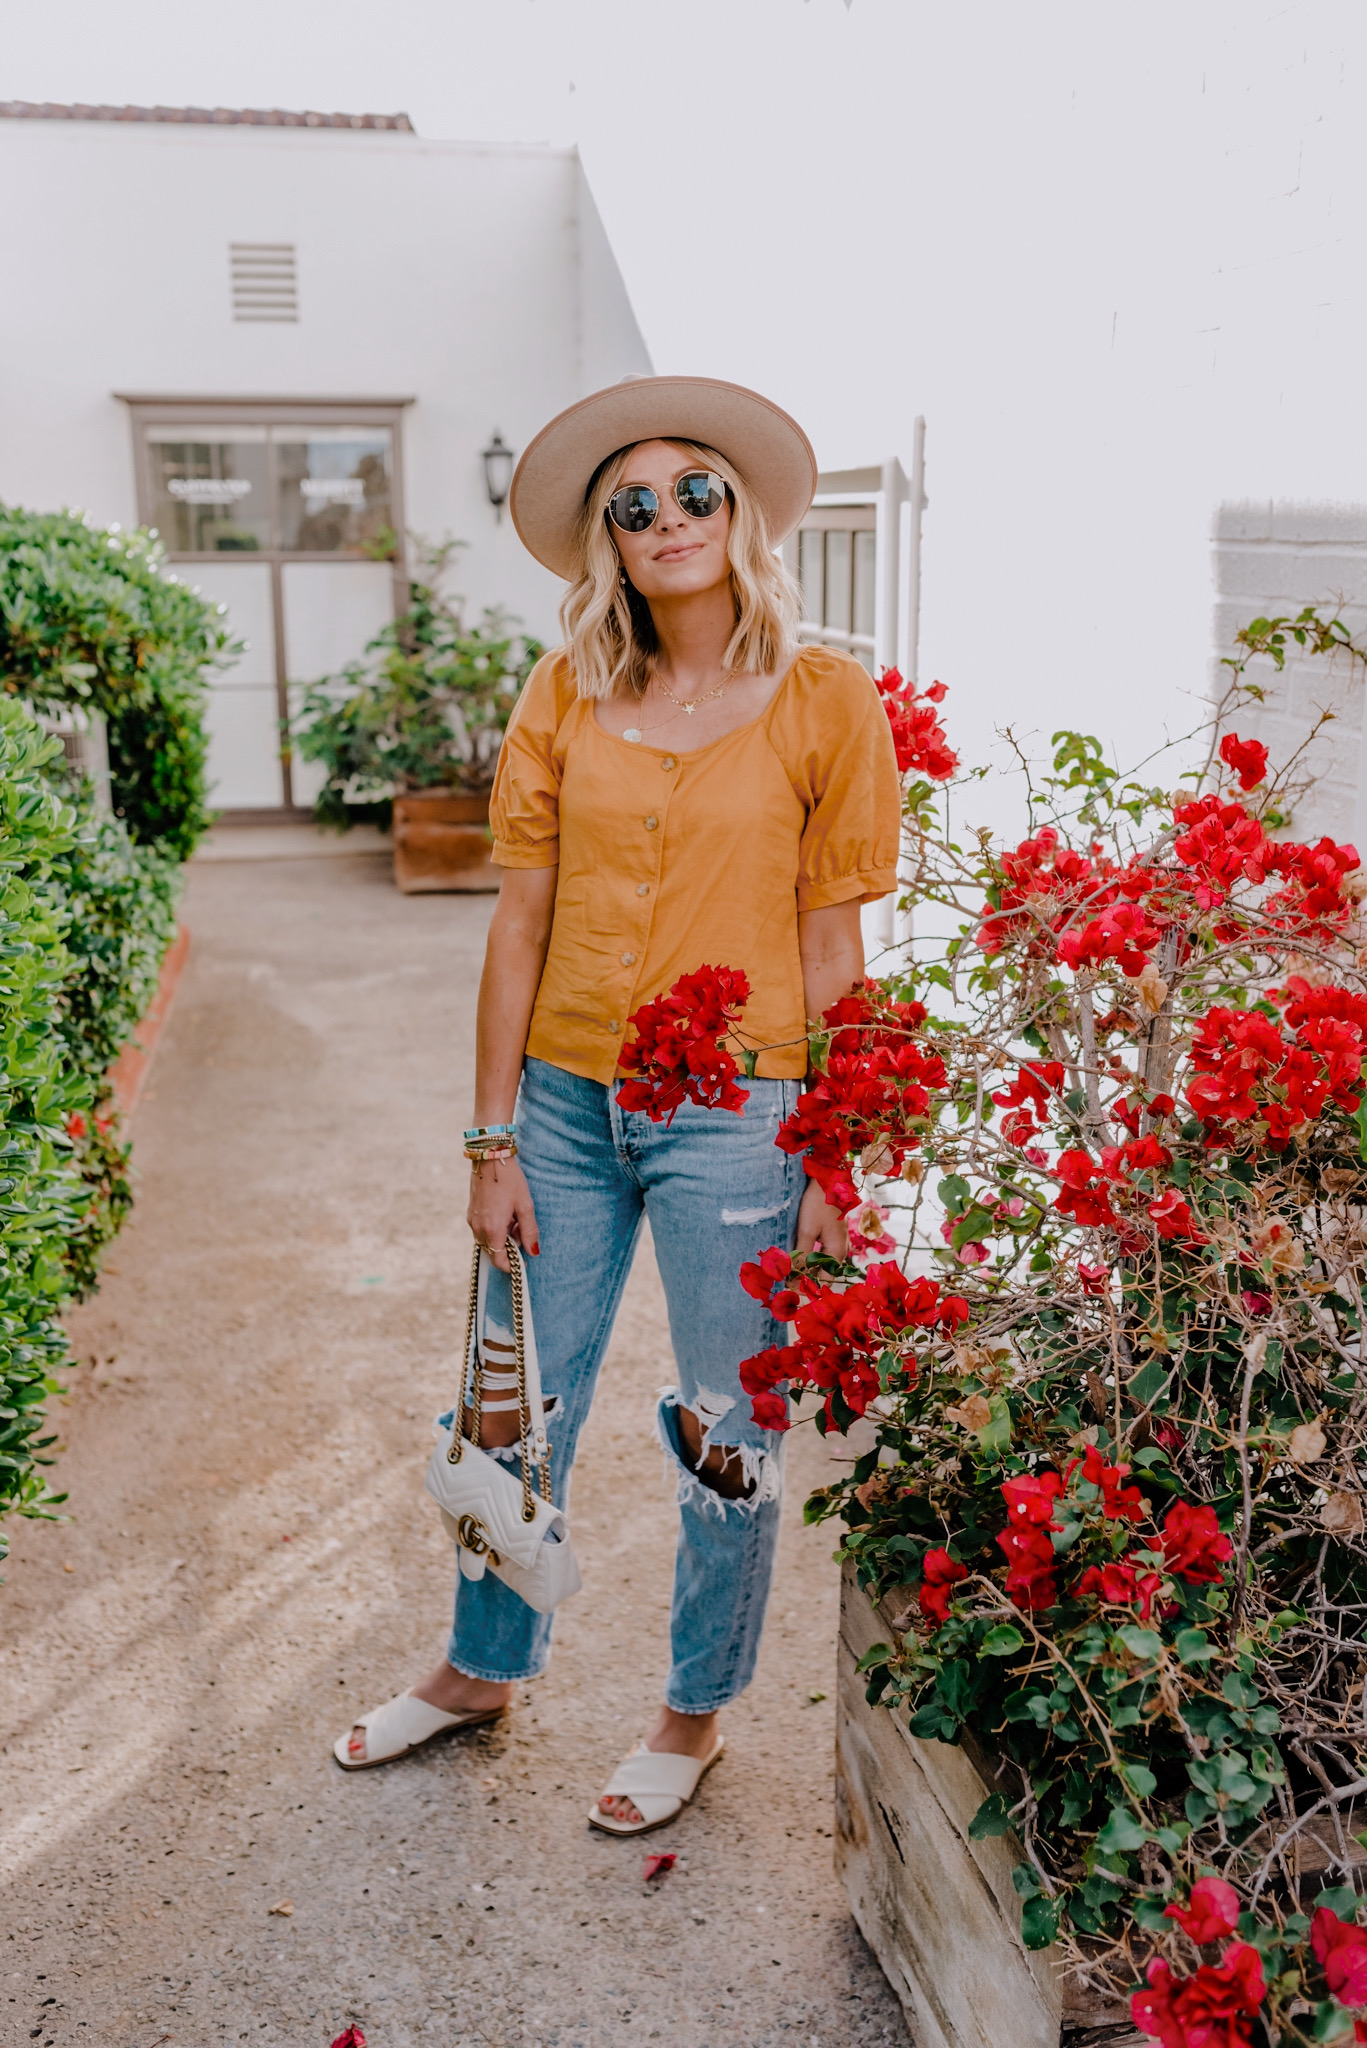 Summer Clothing by popular San Diego fashion blog, Navy Grace: image of a woman standing outside by some red flower bushes and white brick building and wearing a Everlane The Linen Puff-Sleeve Top, Agolde 90s Mid Rise Loose Fit, Everlane The Day Crossover Sandal, and Amazon Gigi Pip Monroe Oatmeal - Women's Rancher Hat